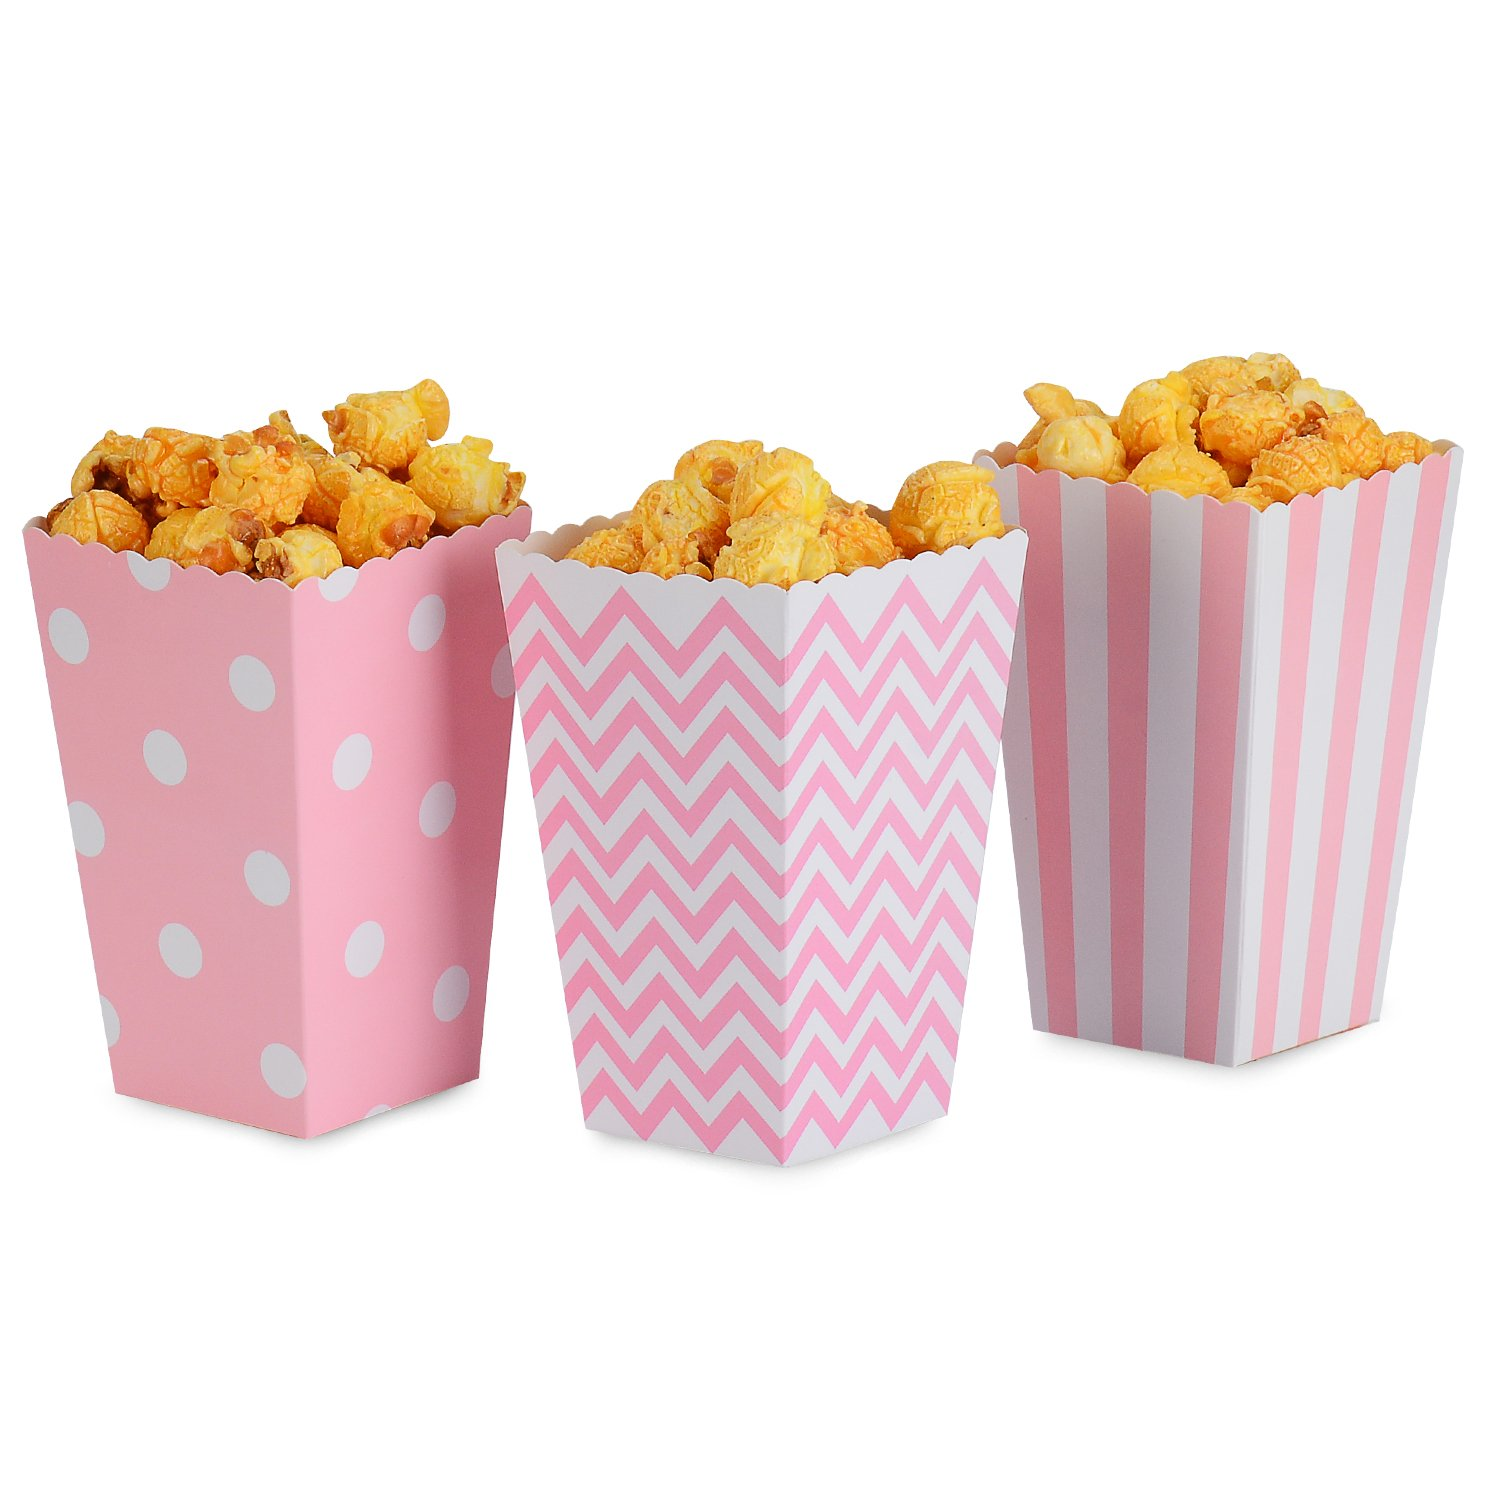 NUIBY Popcorn Boxes, Pink Trio (36 Pack) Polka Dot, Chevron, Stripe Treat Boxes - Small Movie Theater Popcorn Paper Bags for Dessert Tables & Wedding Favors